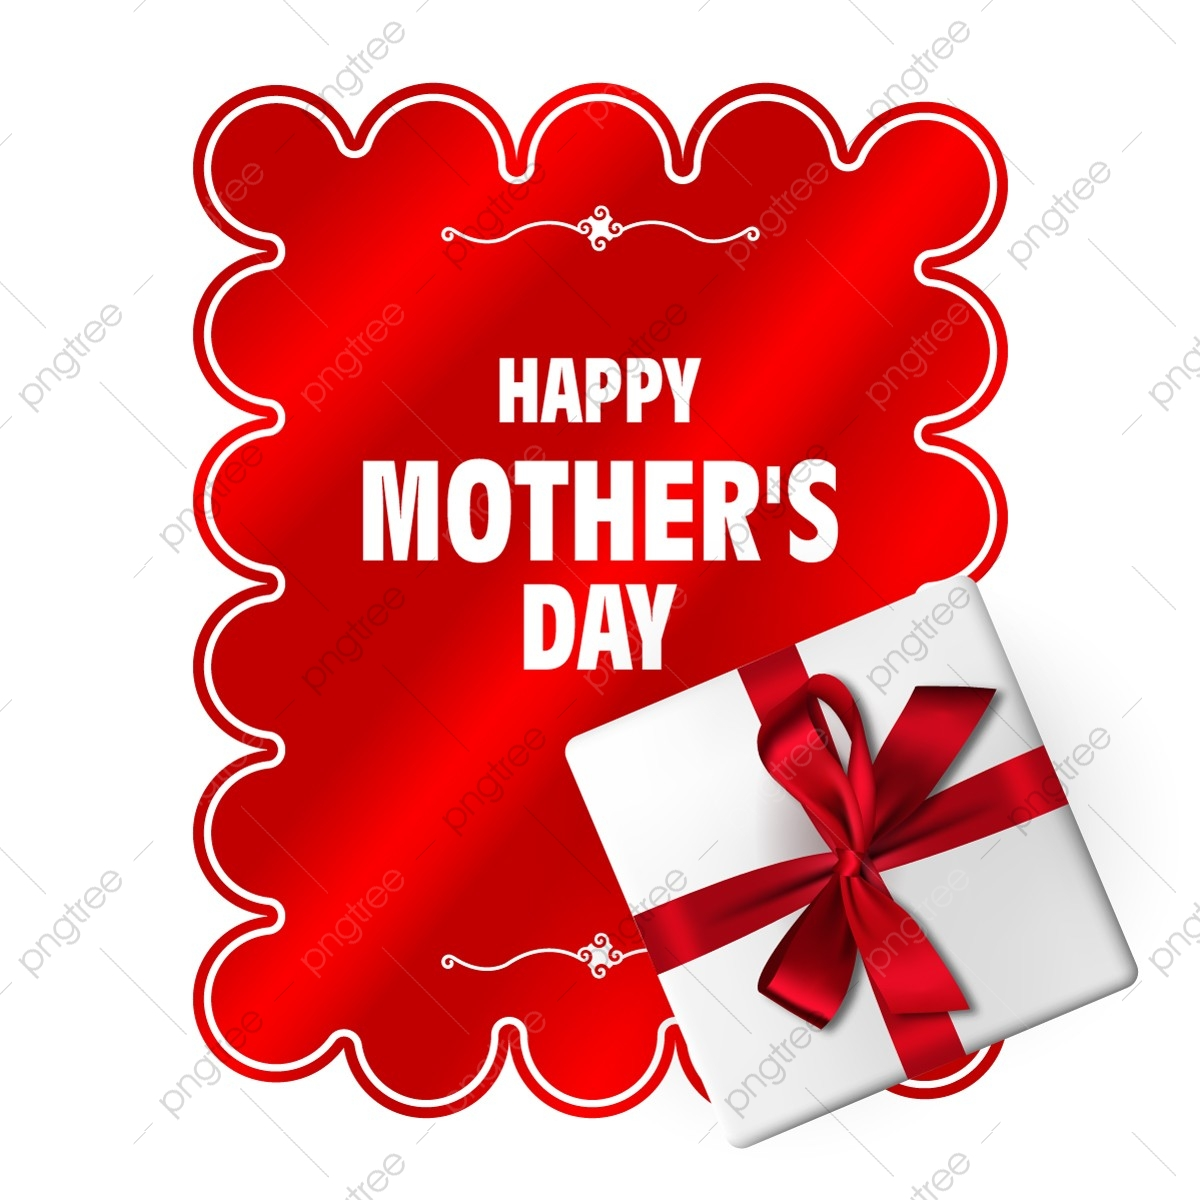 Mother S Day Card With Gift Box Mother S Day Holiday Female Day